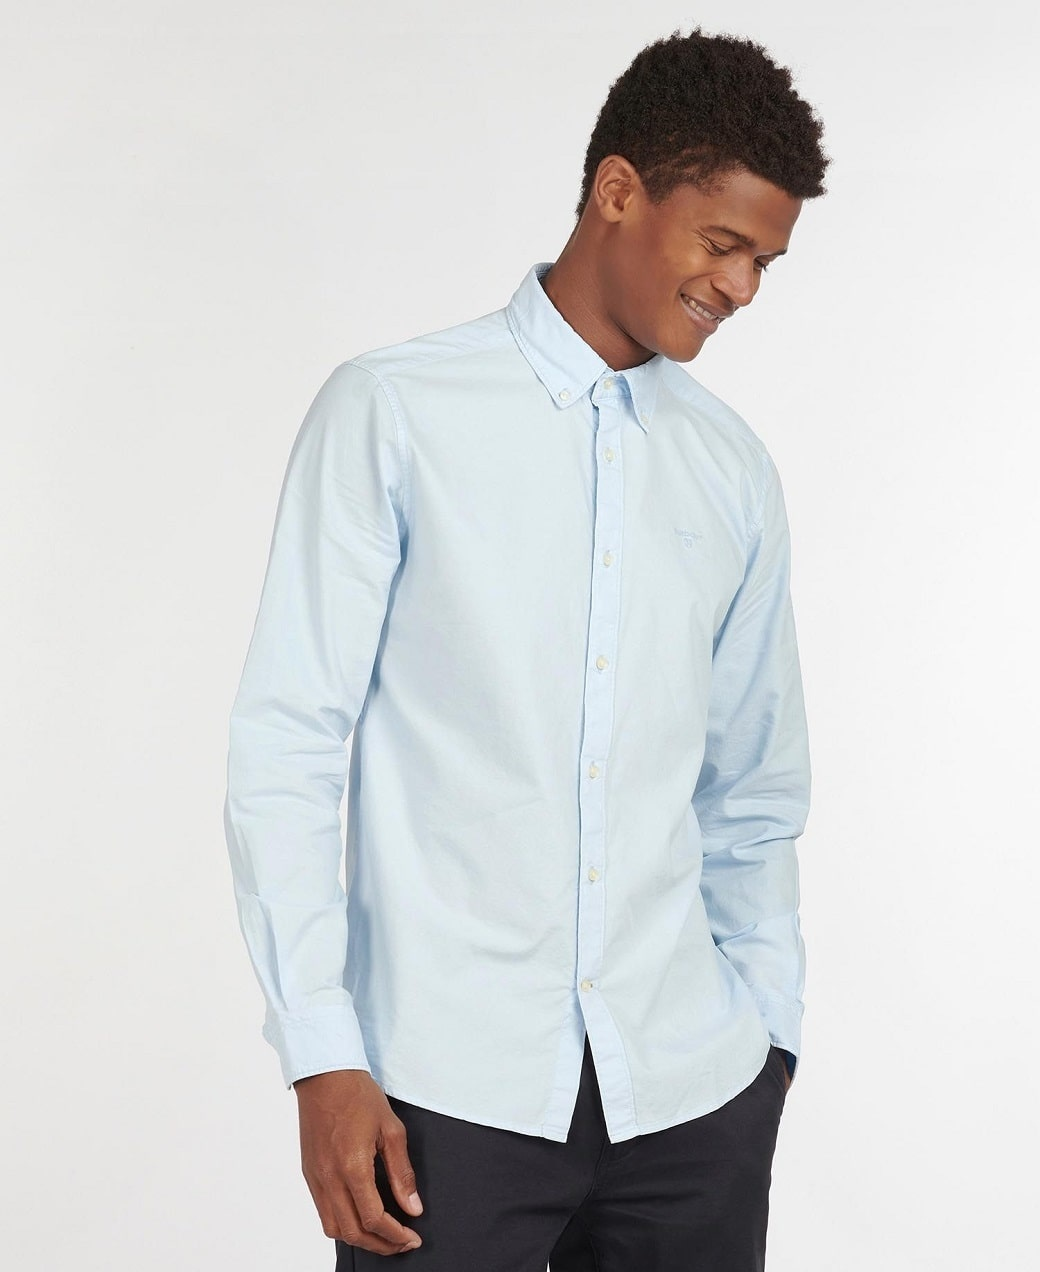 Barbour Oxford 13 Tailored Shirt Sky Blue-2